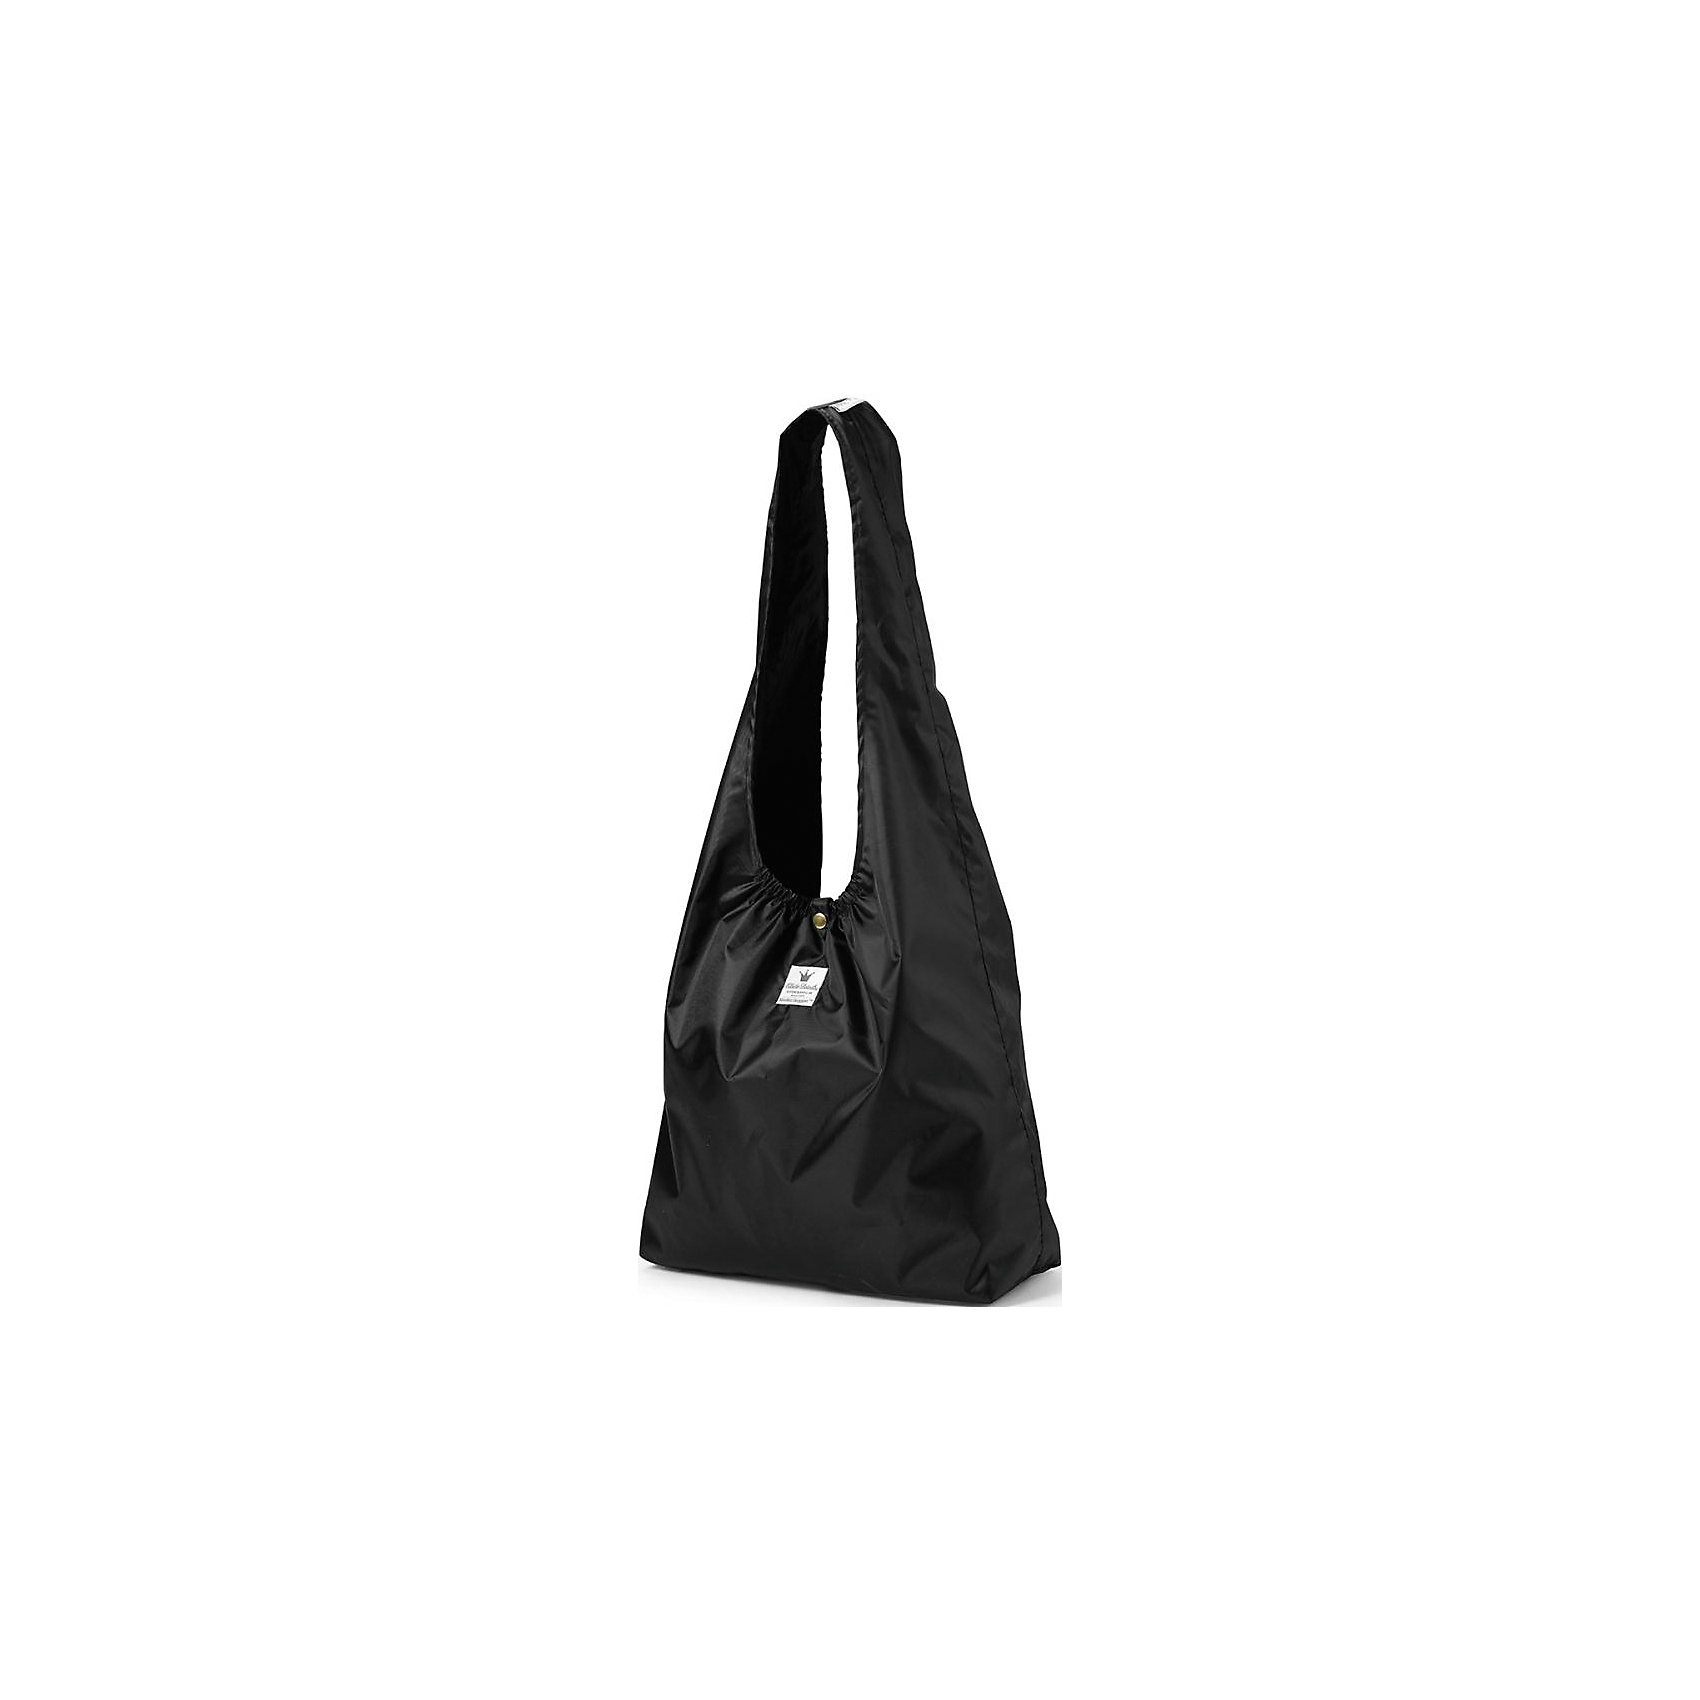 Сумка Black Edition Stroller Shopper, Elodie Details